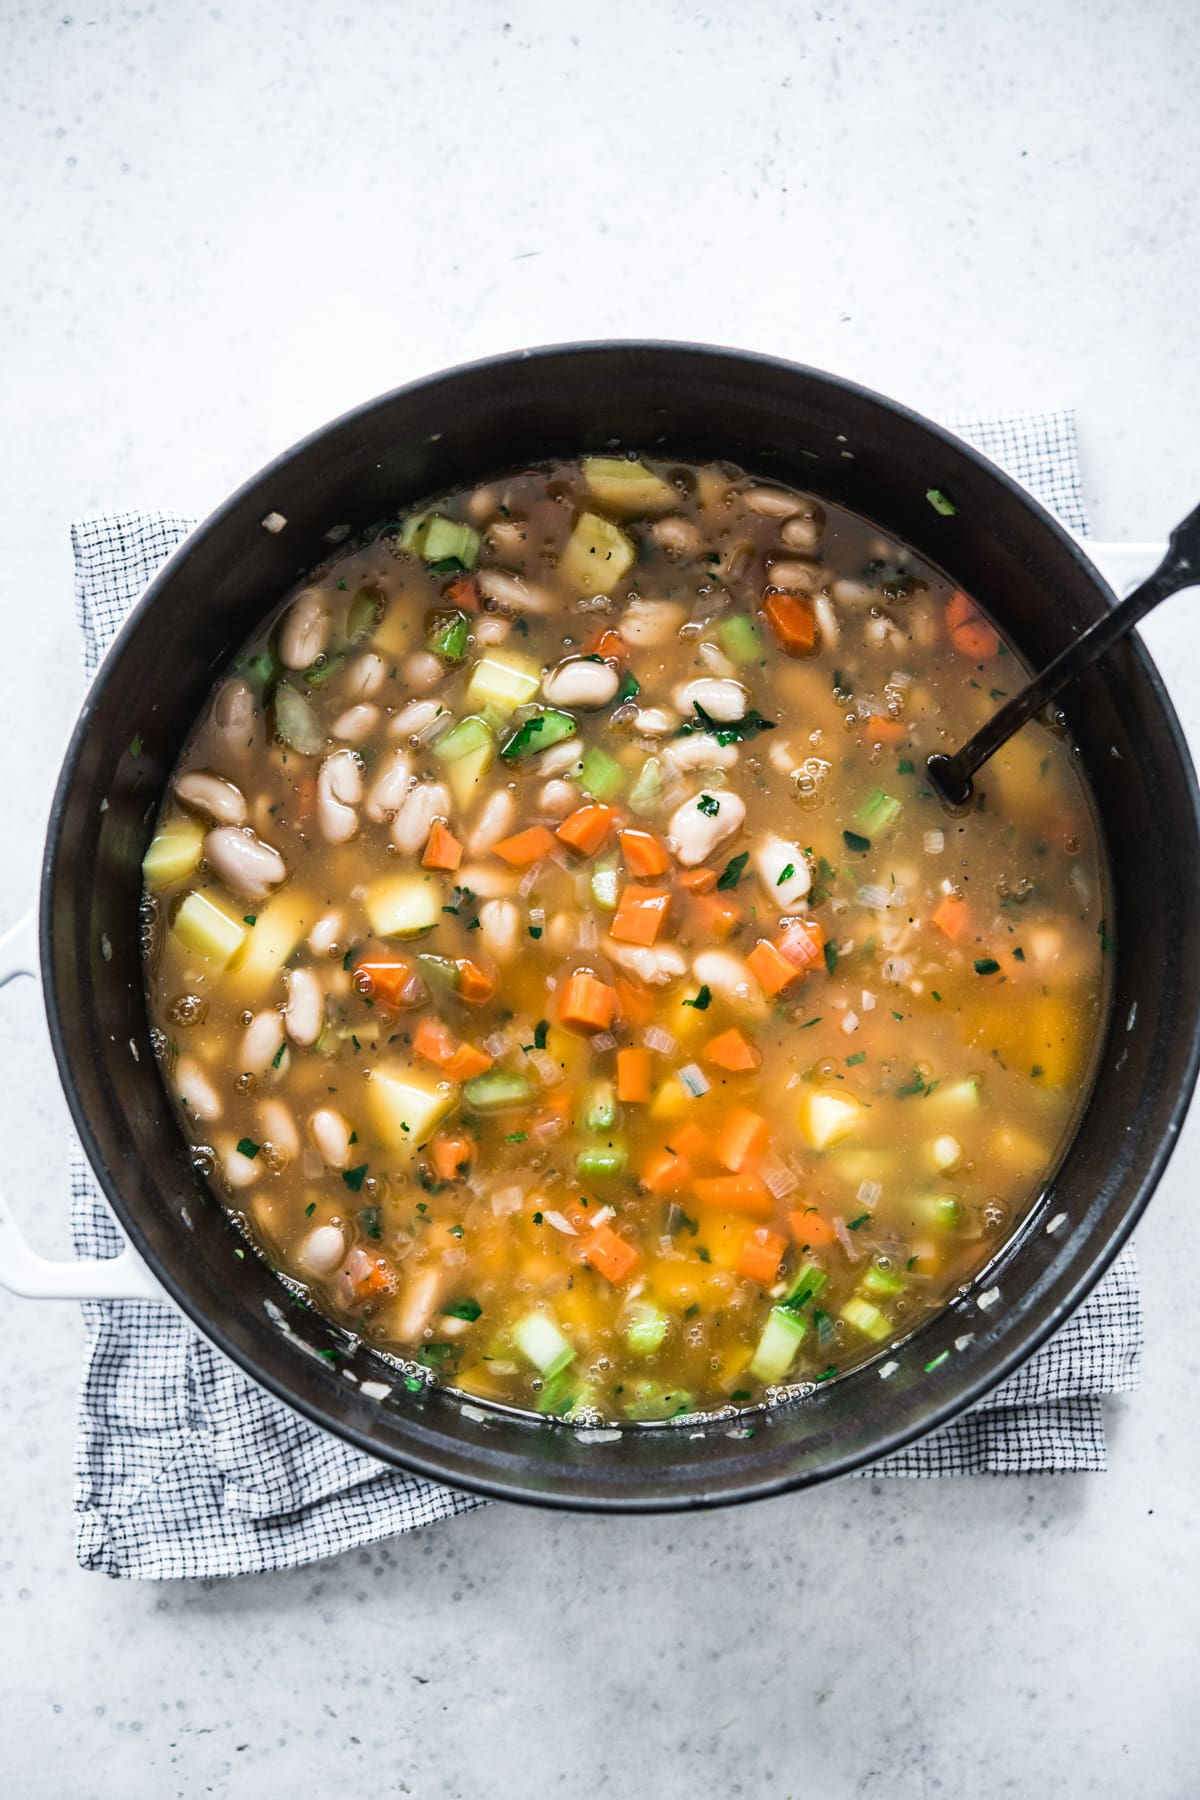 overhead view of soup with white beans and vegetables.